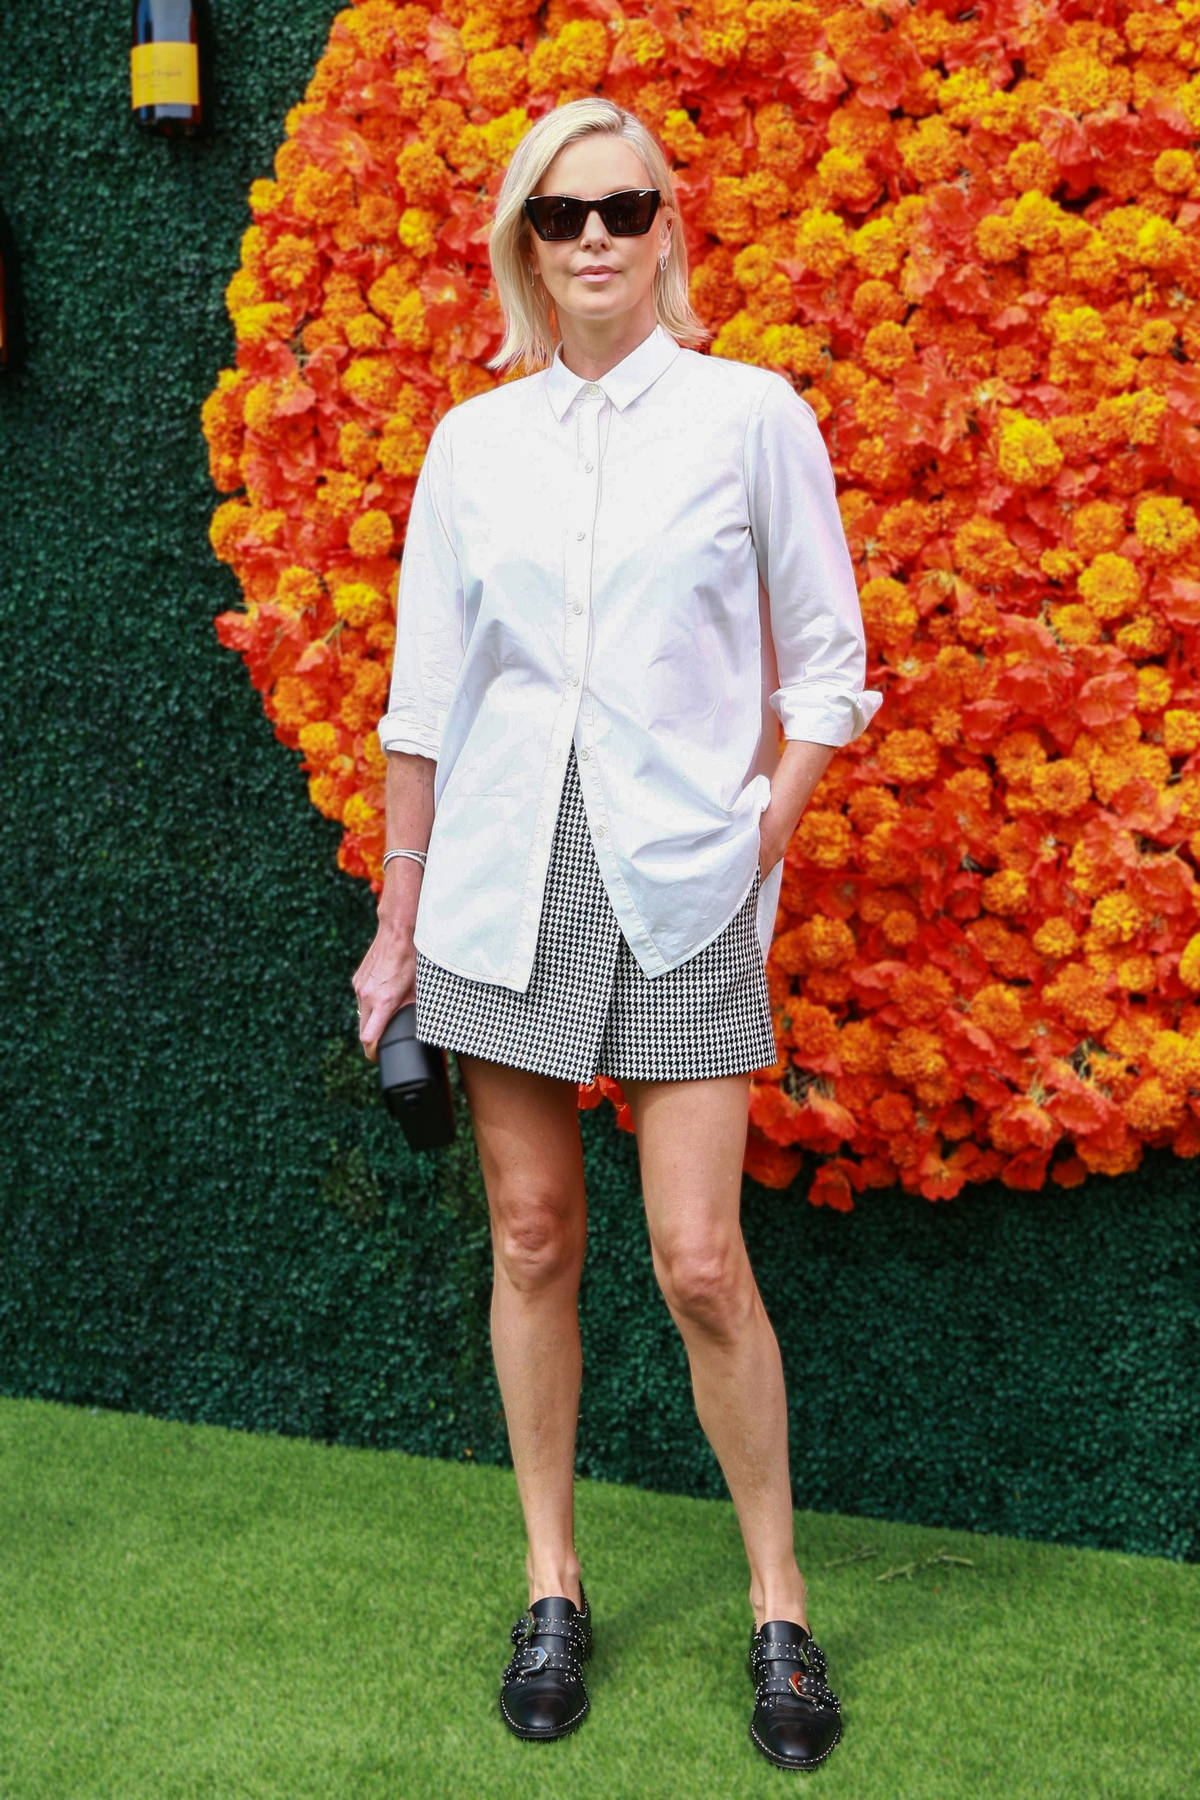 Charlize Theron attends the Veuve Clicquot Polo Classic at Will Rogers State Historic Park in Pacific Palisades, California